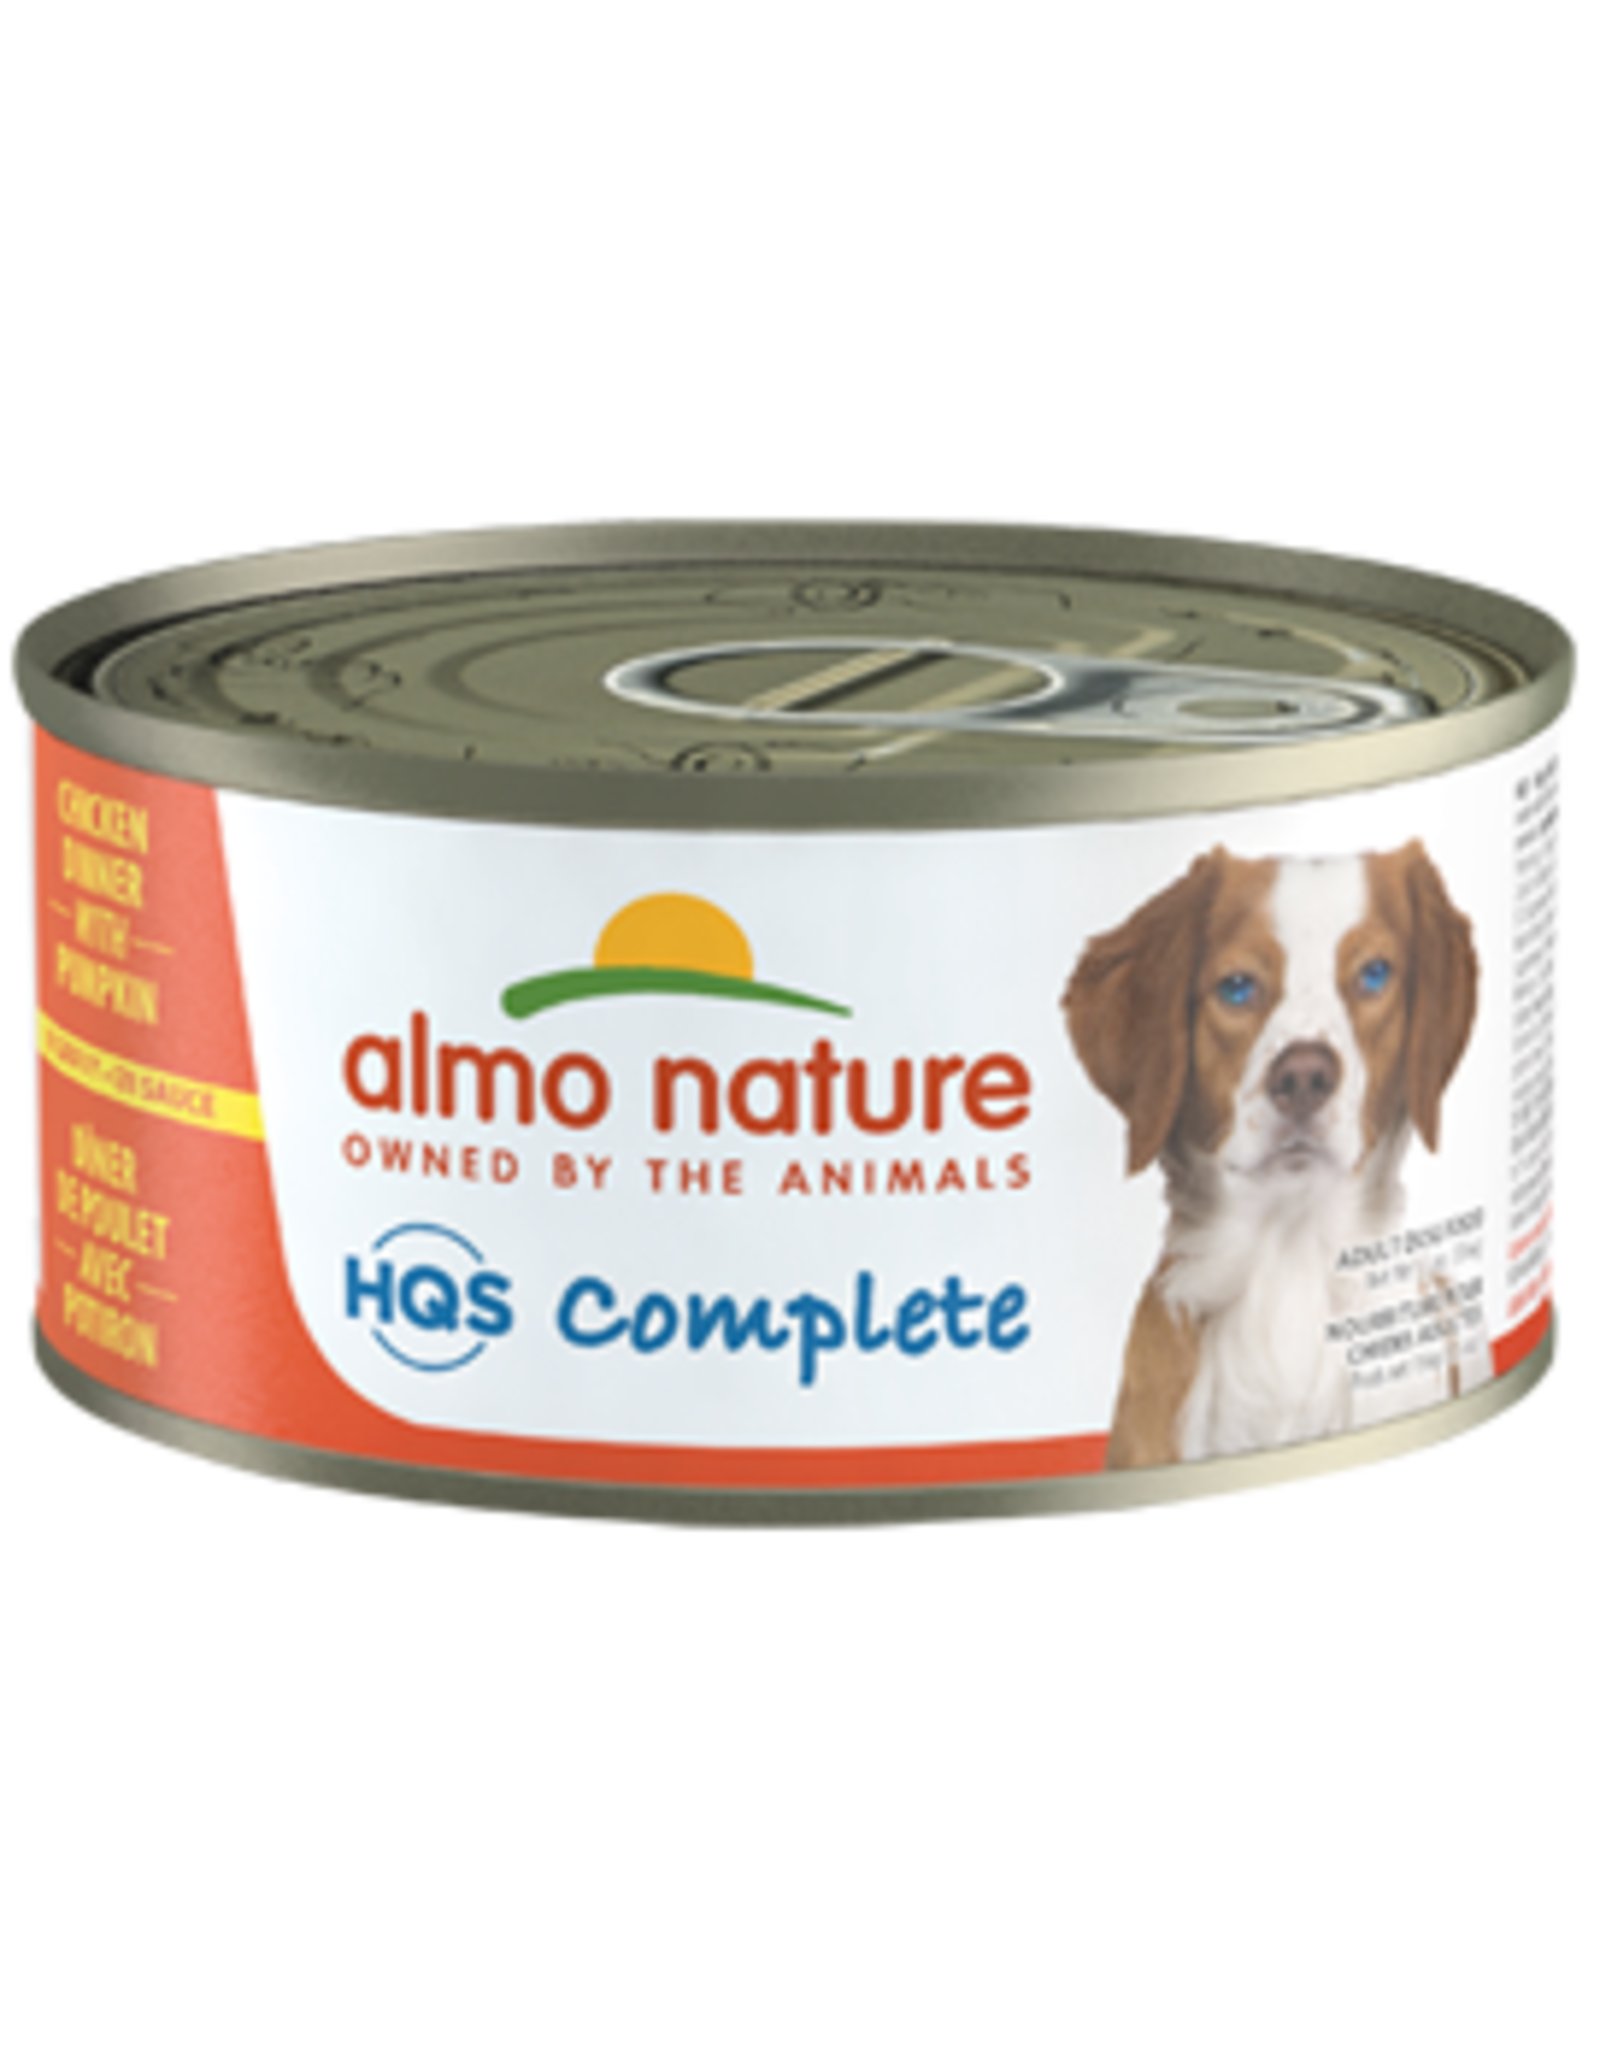 Almo Nature Almo Nature HQS Complete Chicken Dinner w/Pumpkin Dog Food 5.5oz